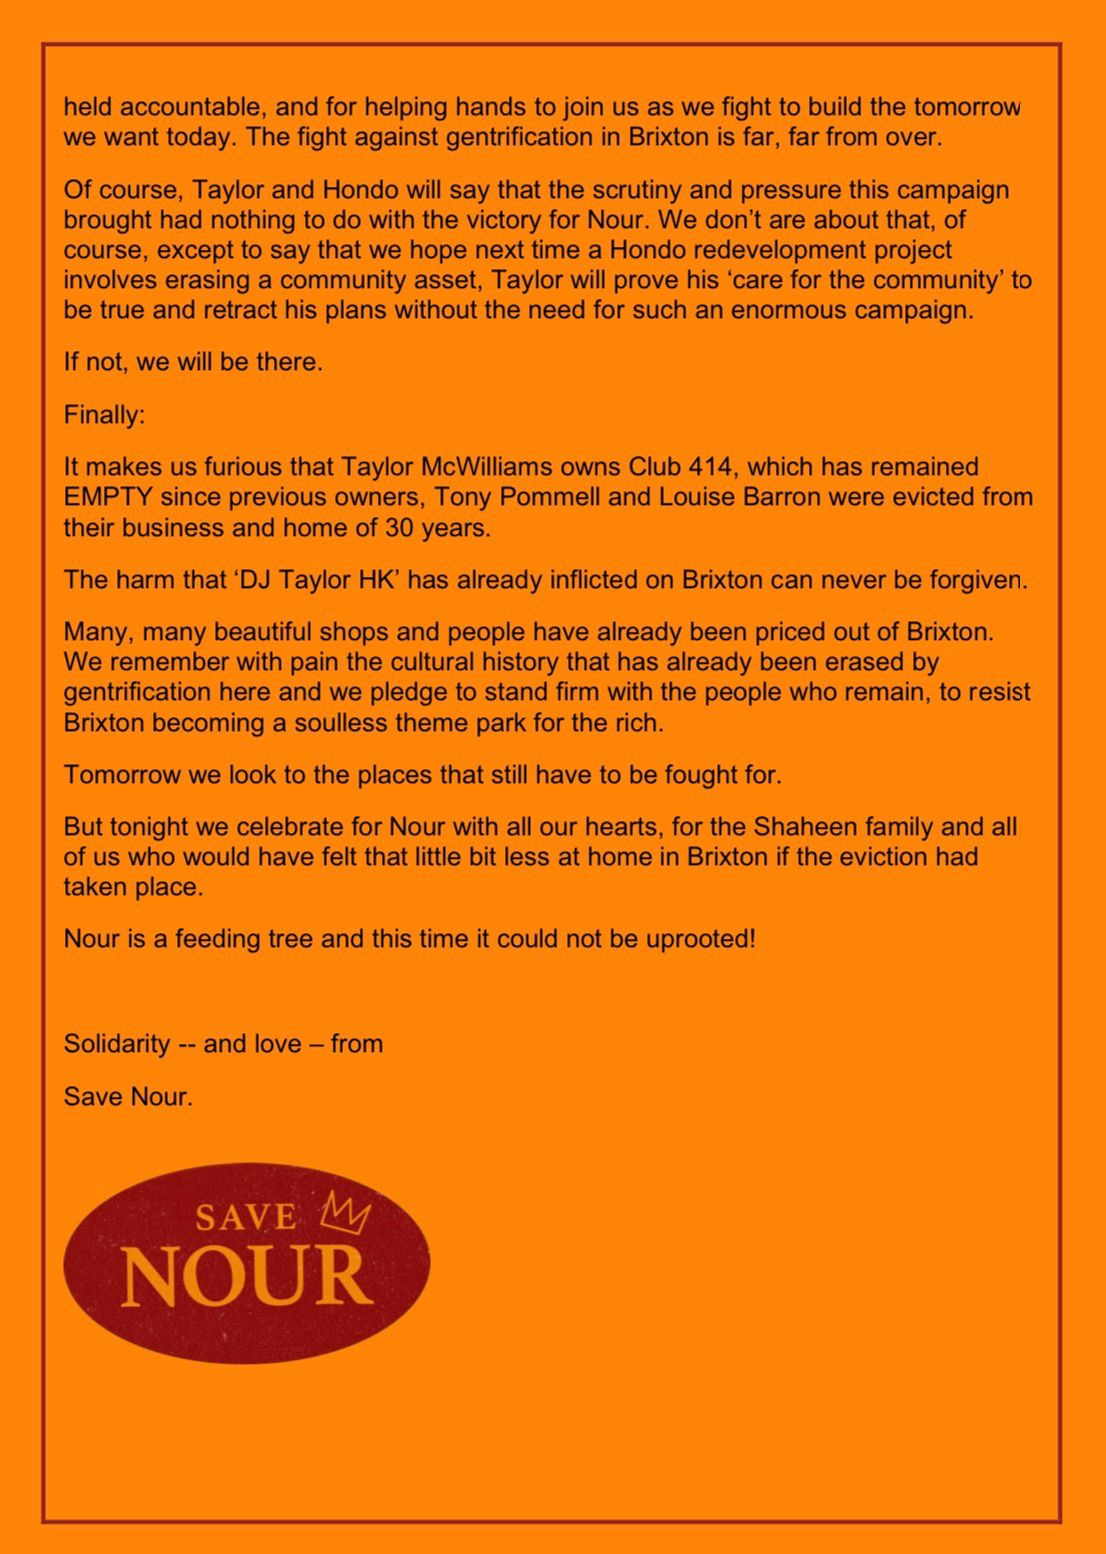 The second part of a statement from Save Nour